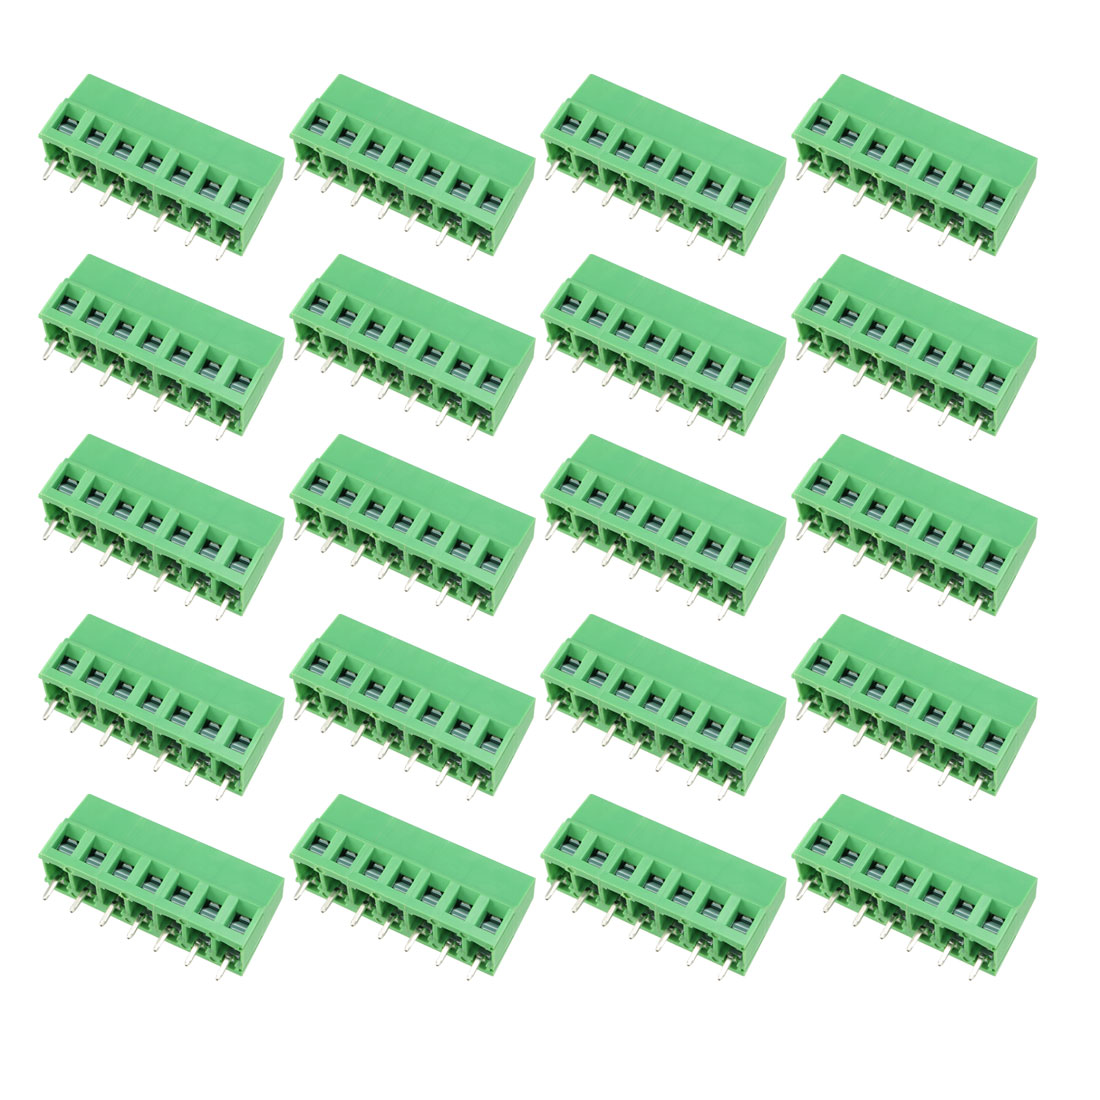 uxcell 10pcs AC300V 15A 5.08mm Pitch 4P Flat Angle Needle Seat Plug-In PCB Terminal Block Connector green